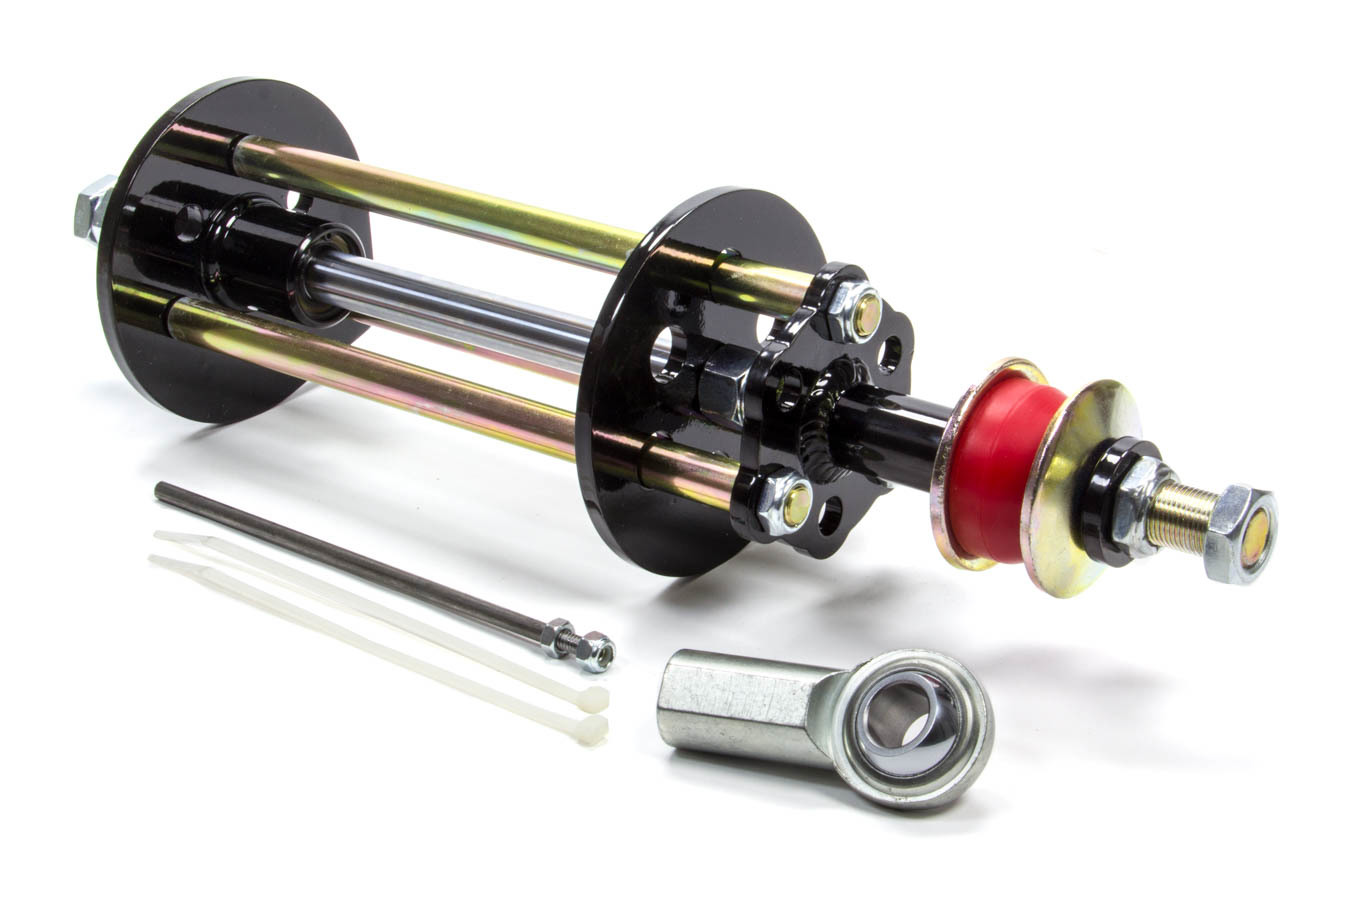 Bsb Manufacturing Pullbar Outlaw Two- Way